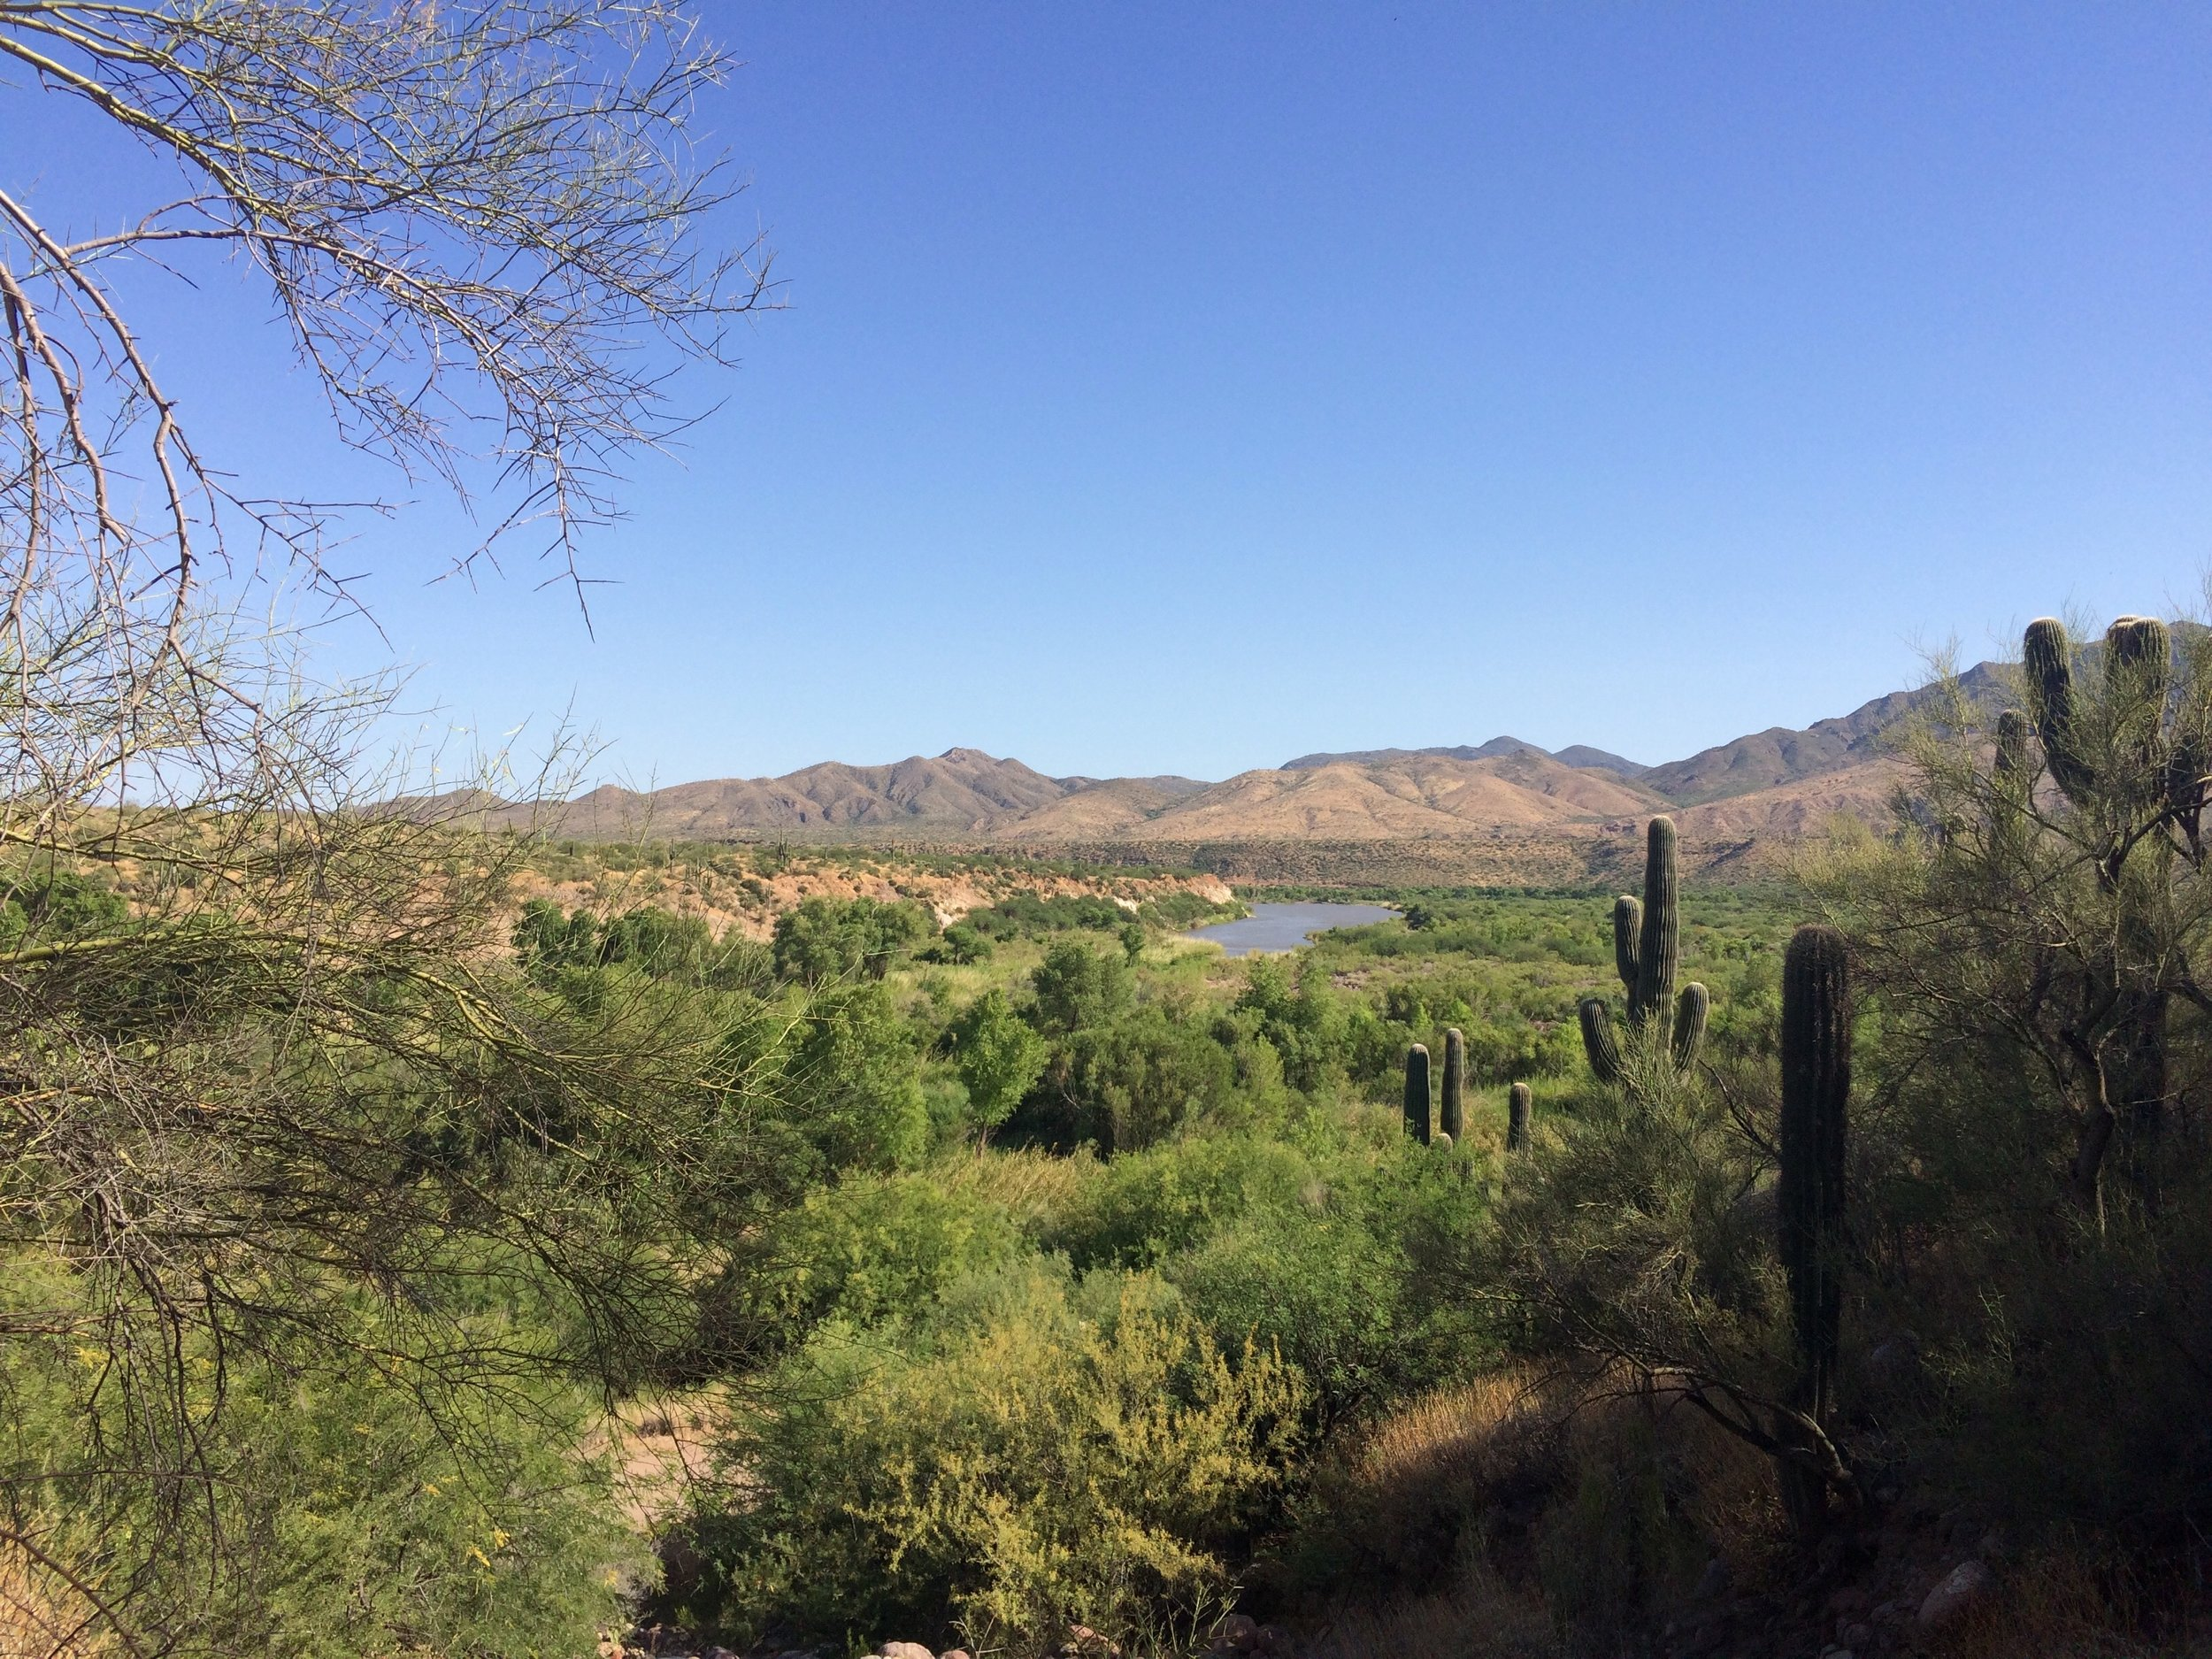 Somewhere beautiful at the Tonto National Forest.